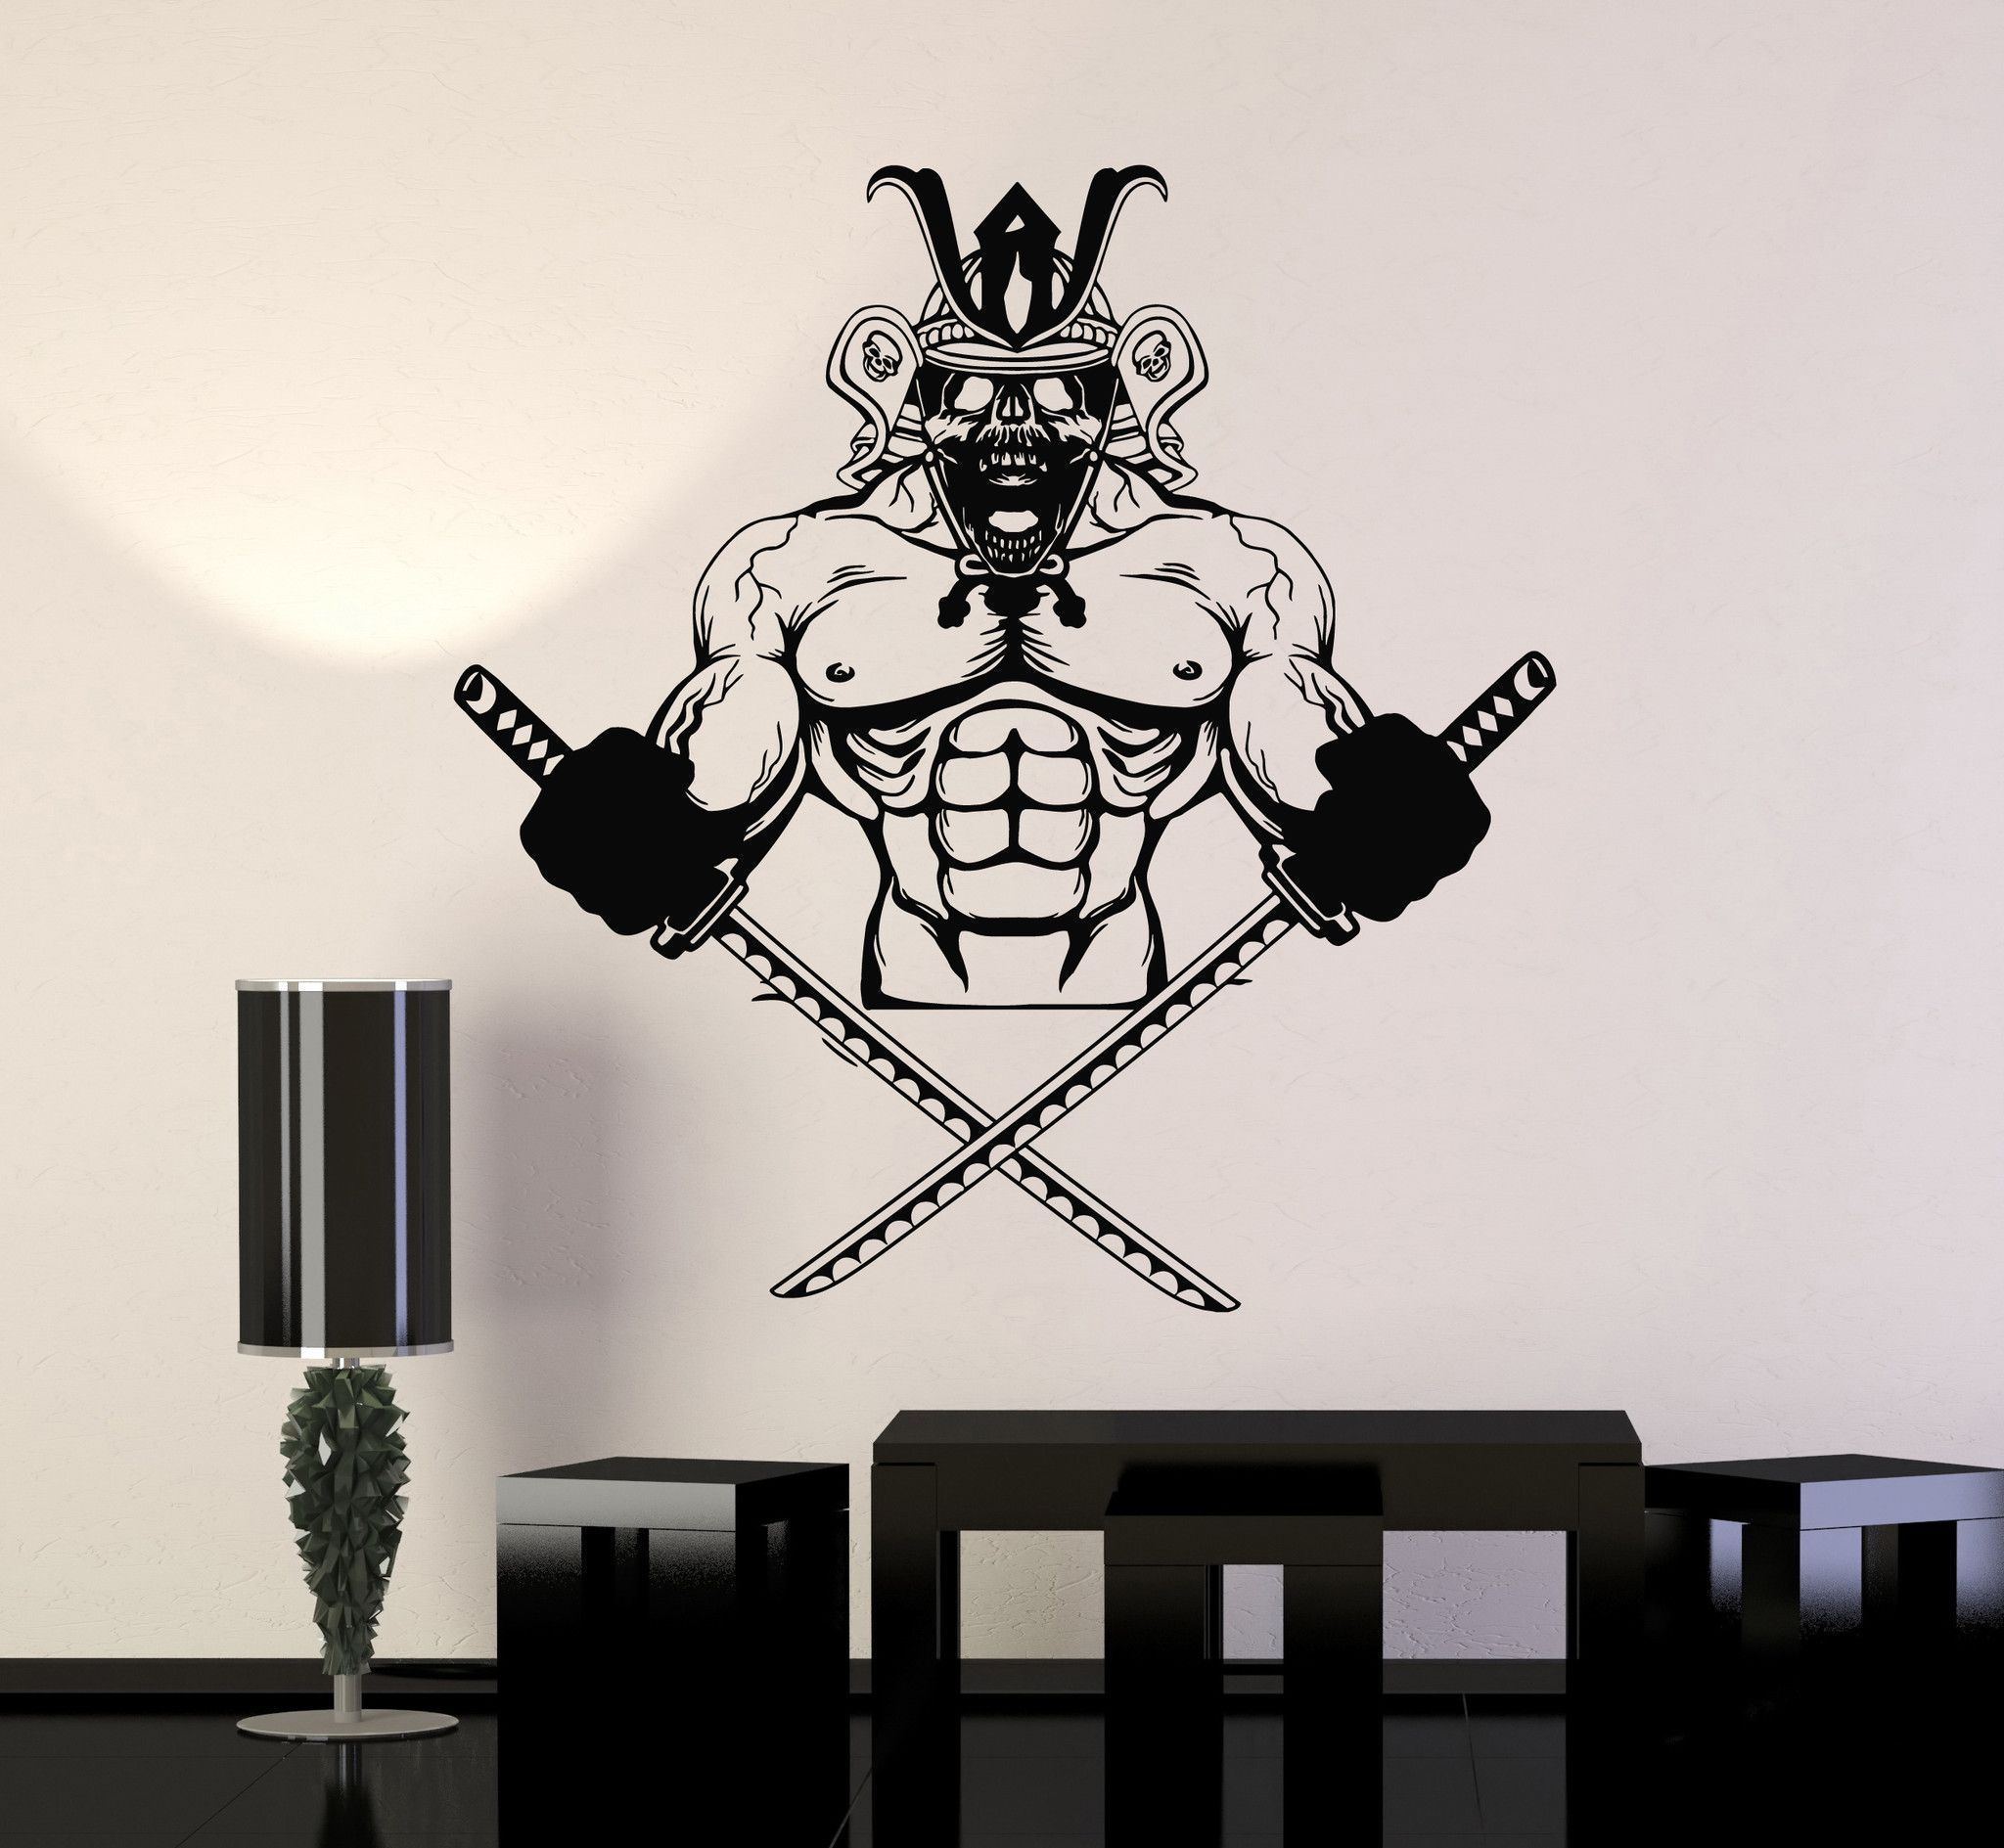 Vinyl wall decal samurai skull katana asian warrior stickers murals ig4737 vinyl wall decals